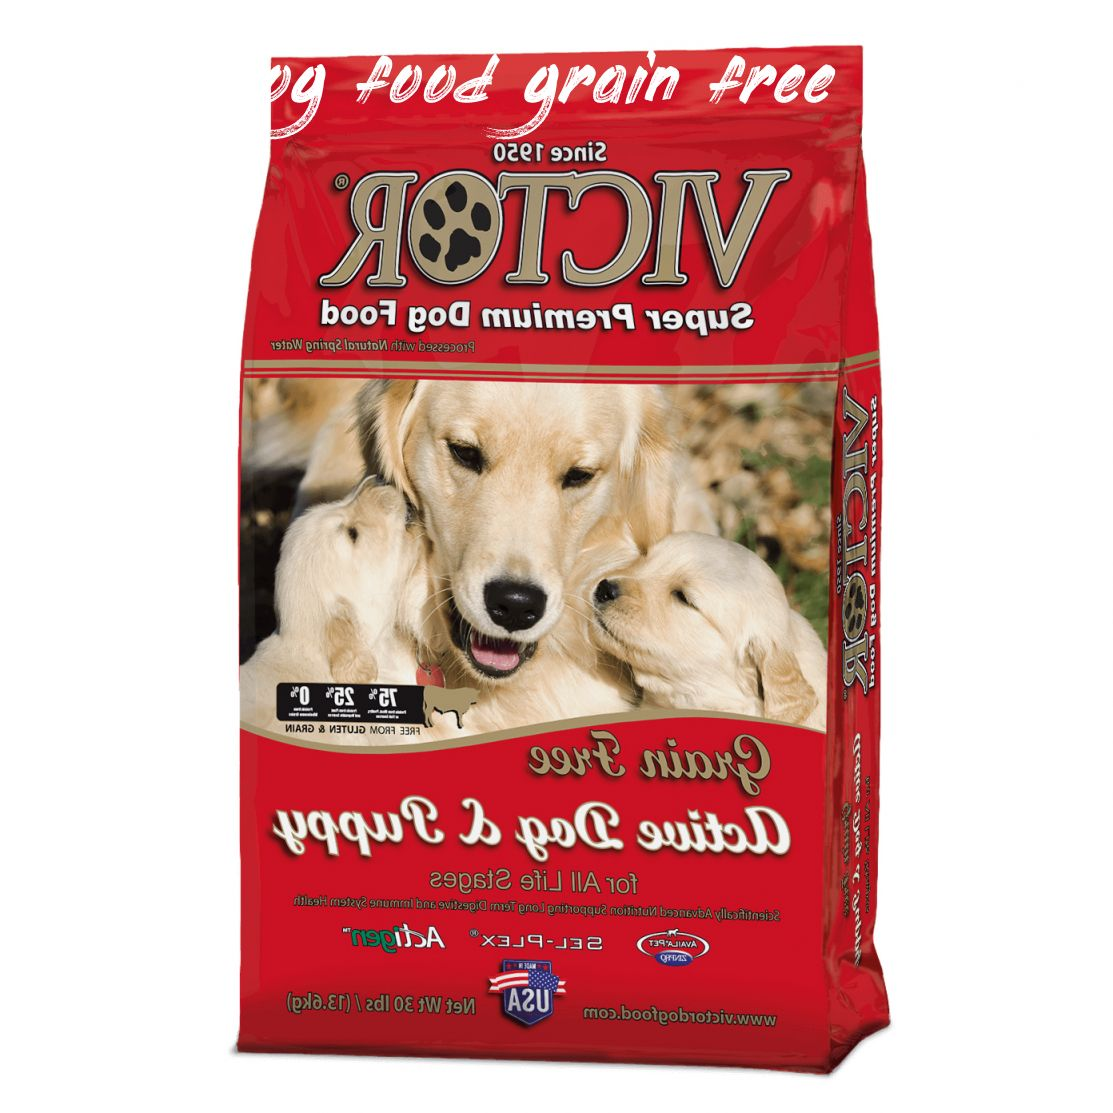 Why is victor dog food grain free